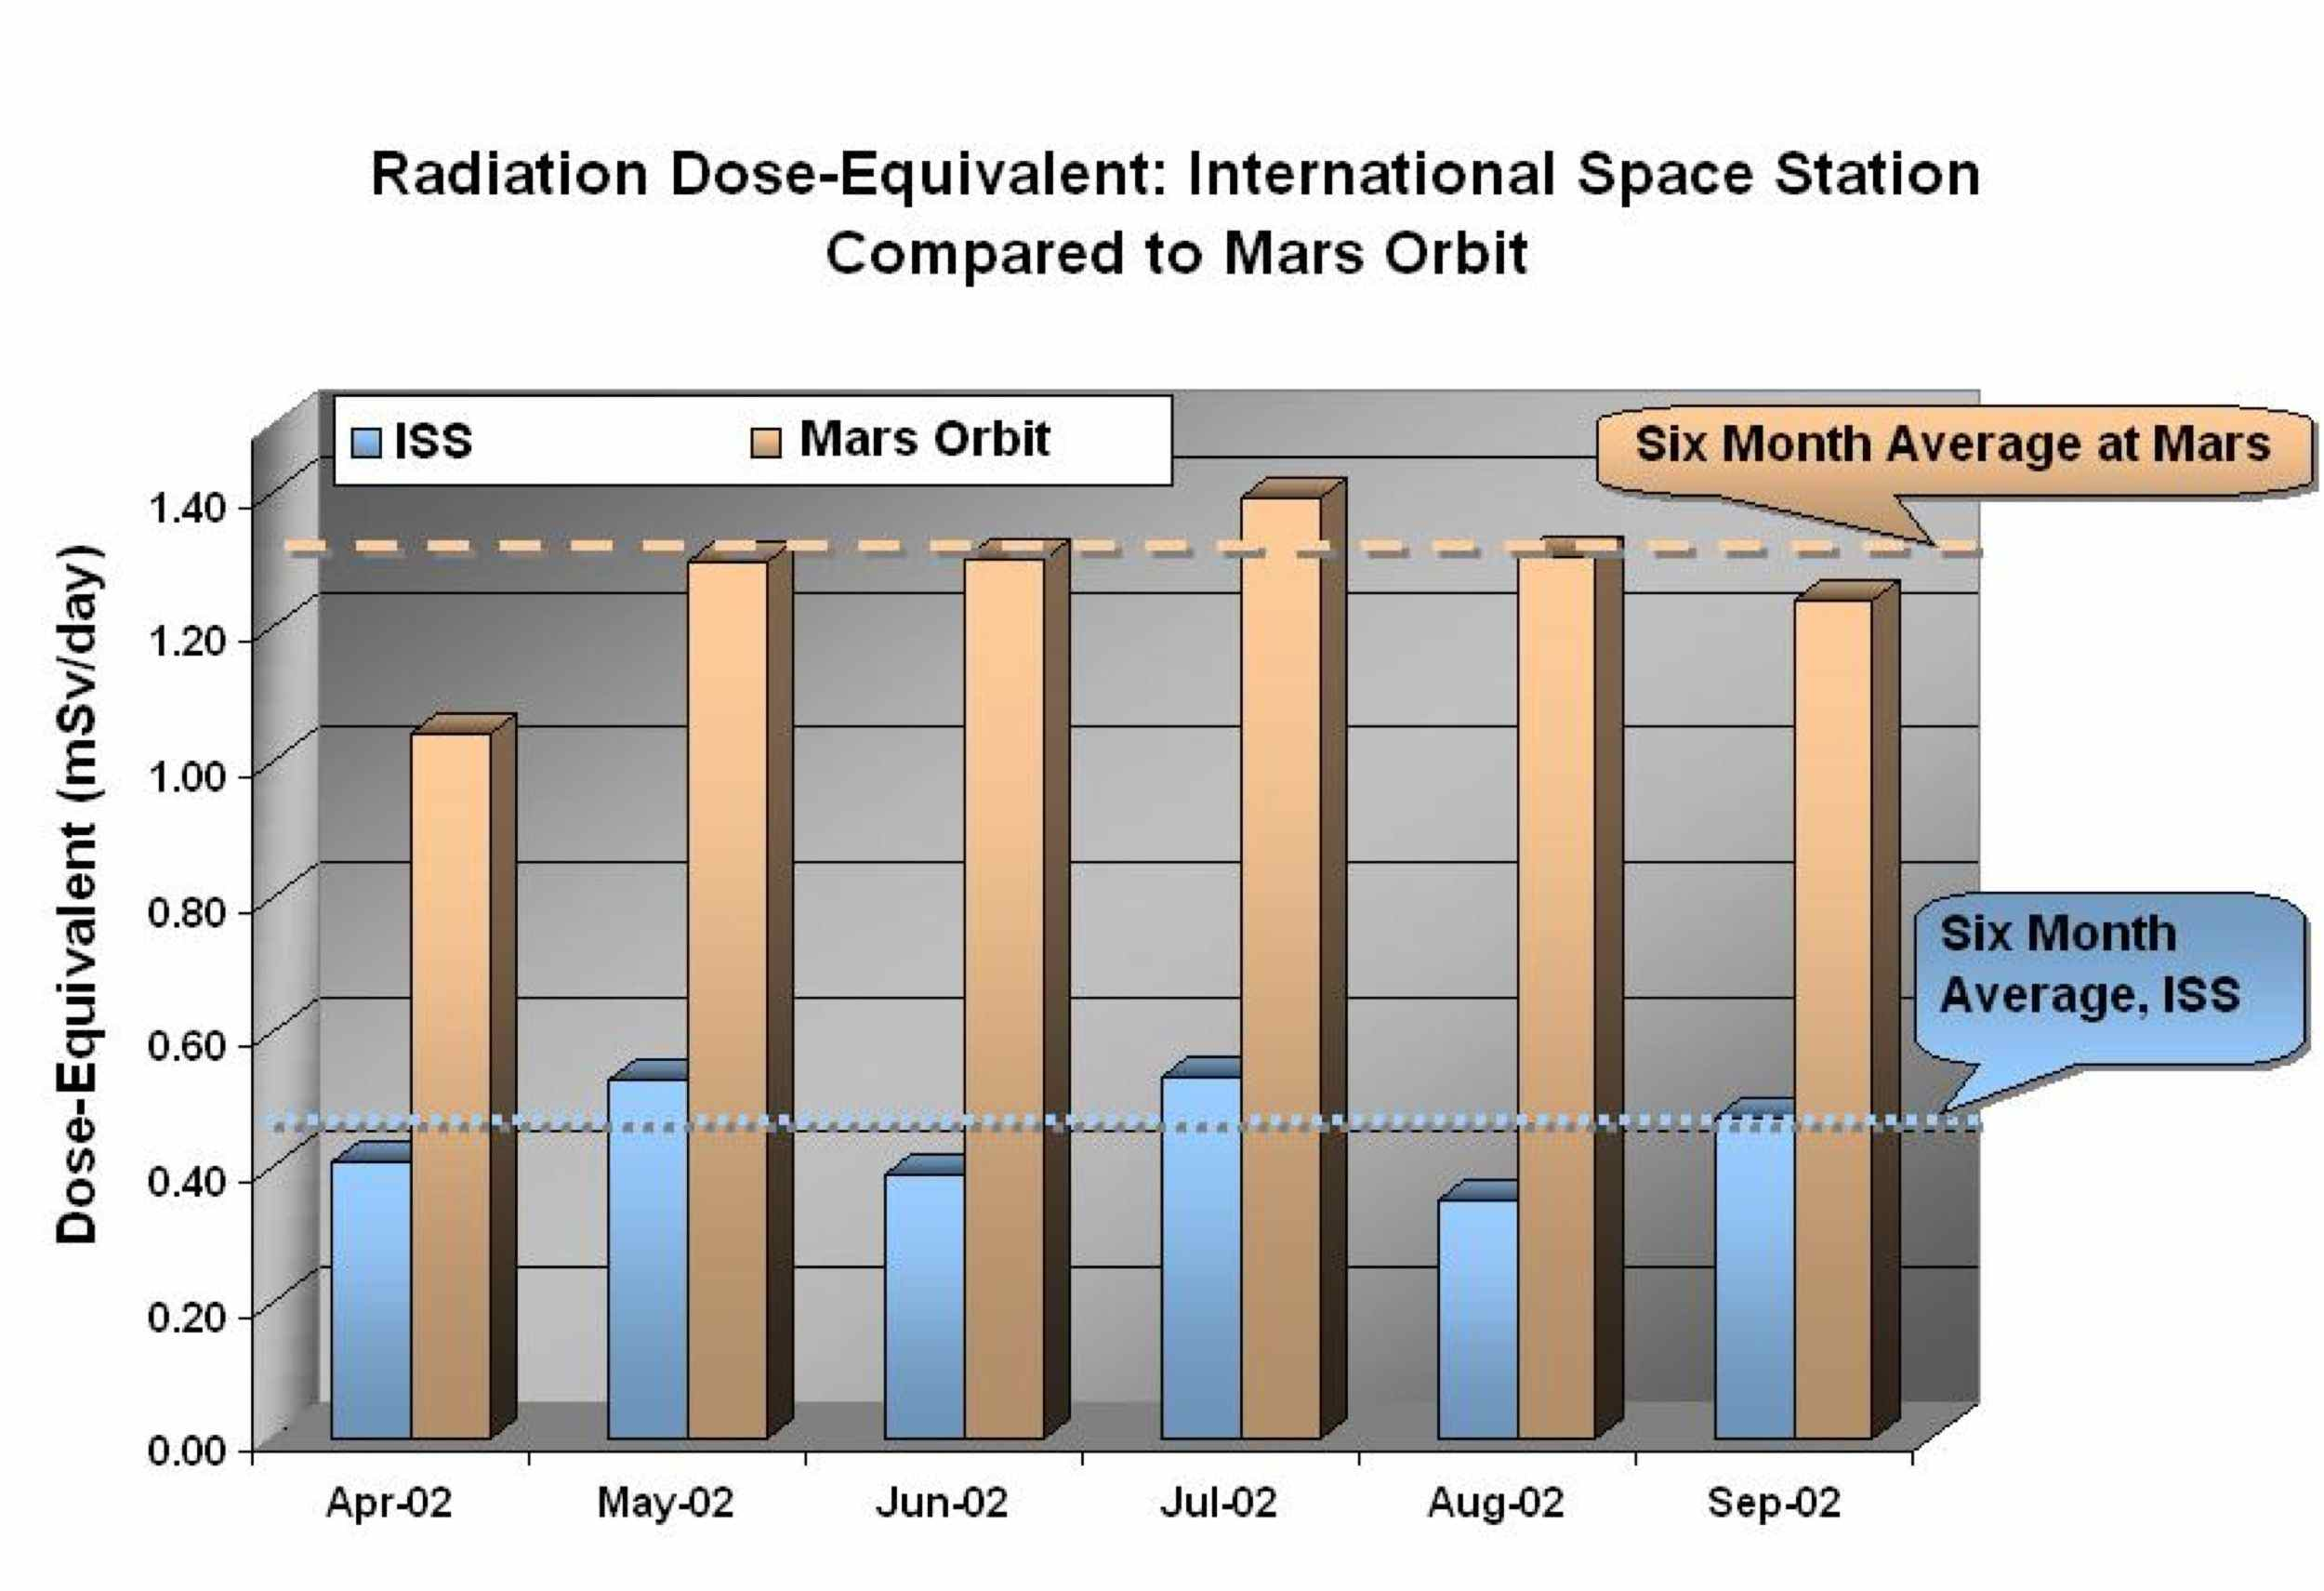 Data from NASA's Mars Odyssey spacecraft's Martian radiation environment experiment show that the radiation dose equivalent at Mars is two to three times greater than that aboard the International Space Station.